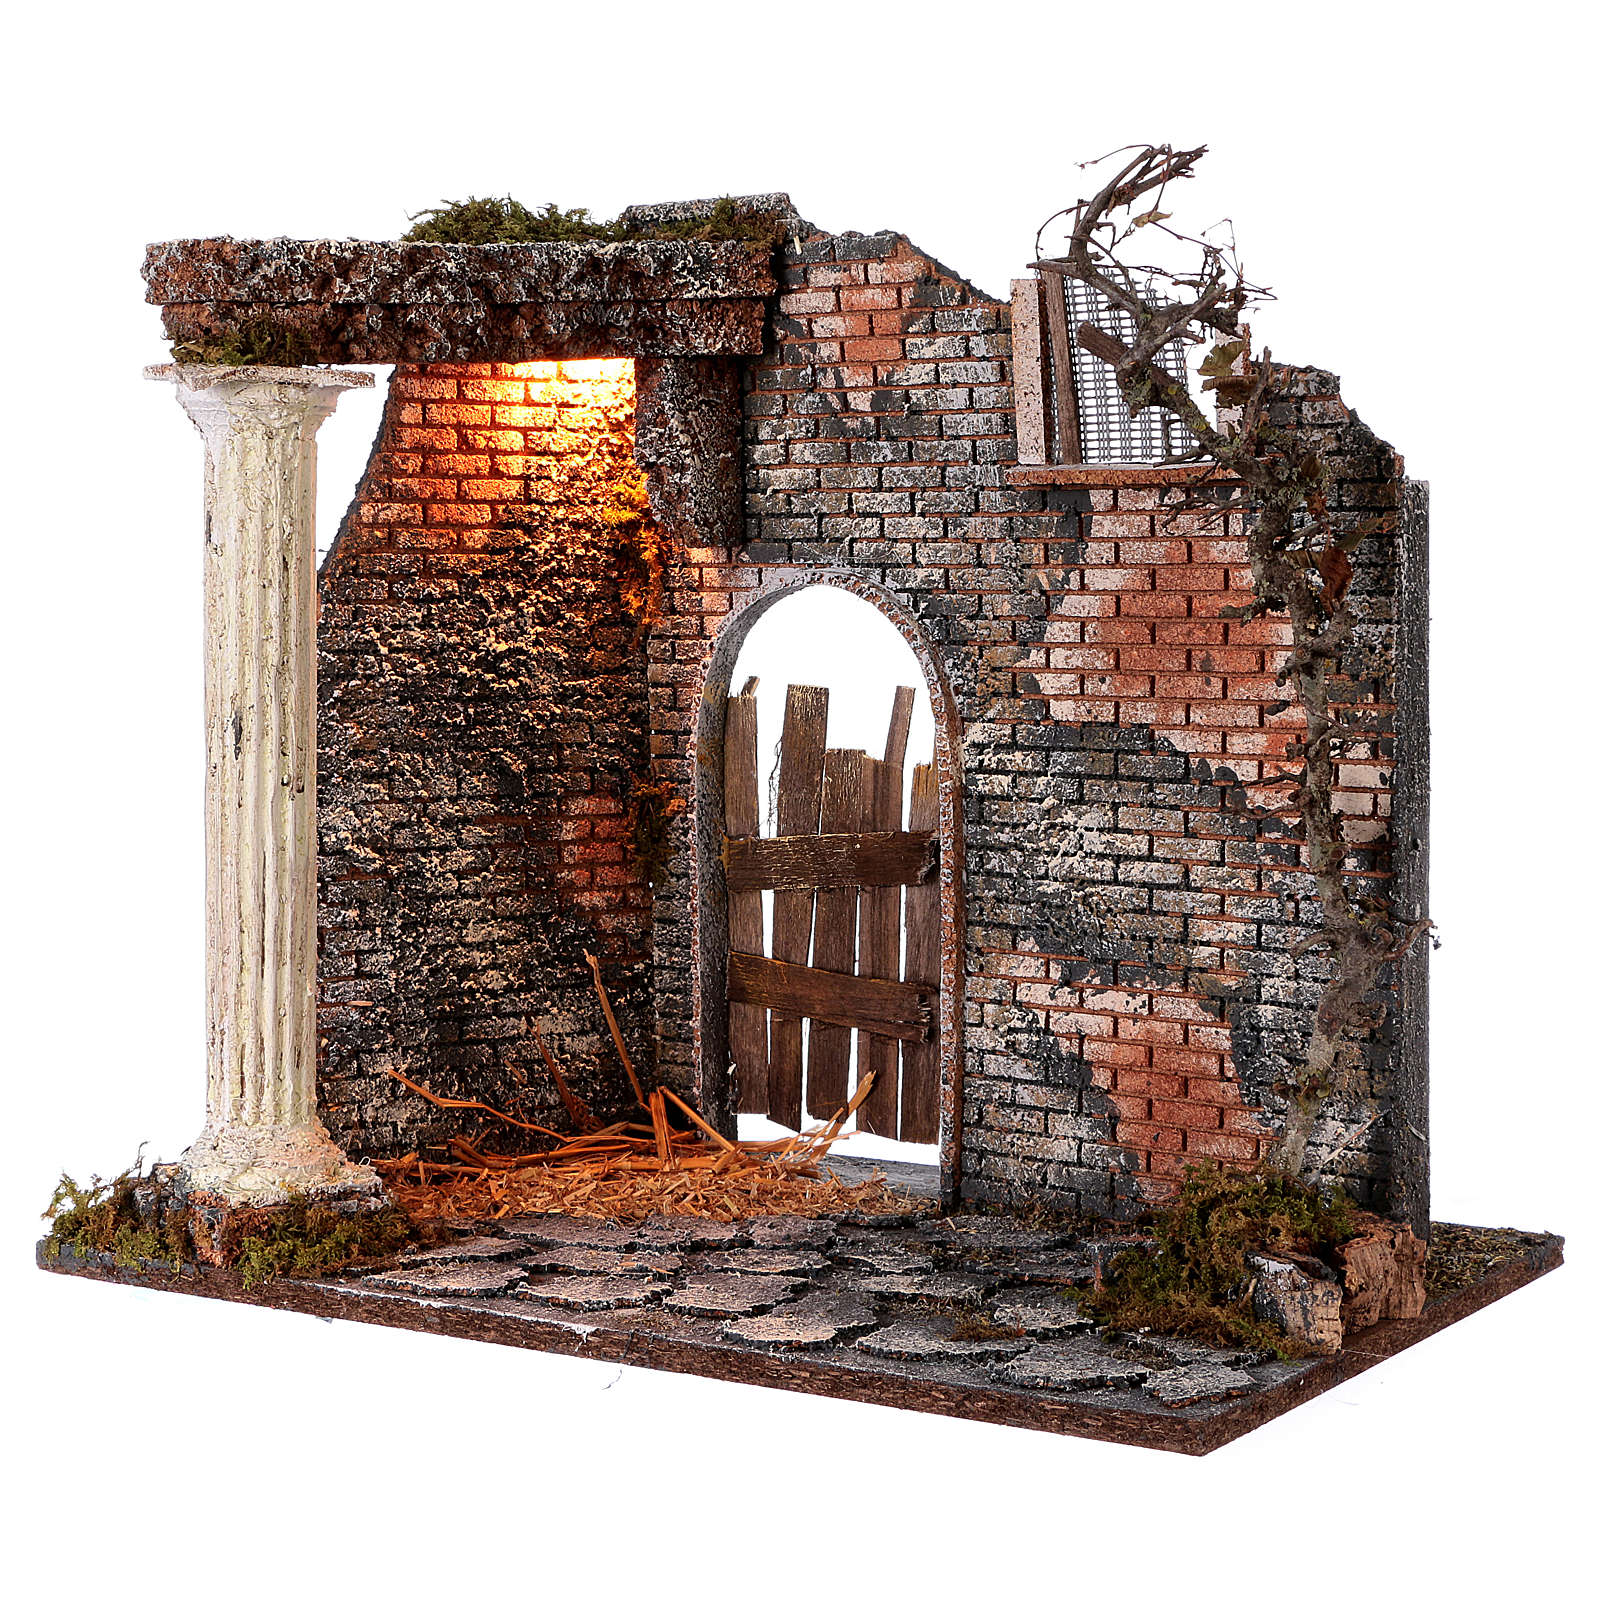 Illuminated temple with pillar for Nativity Scene 45x30x40 cm 4